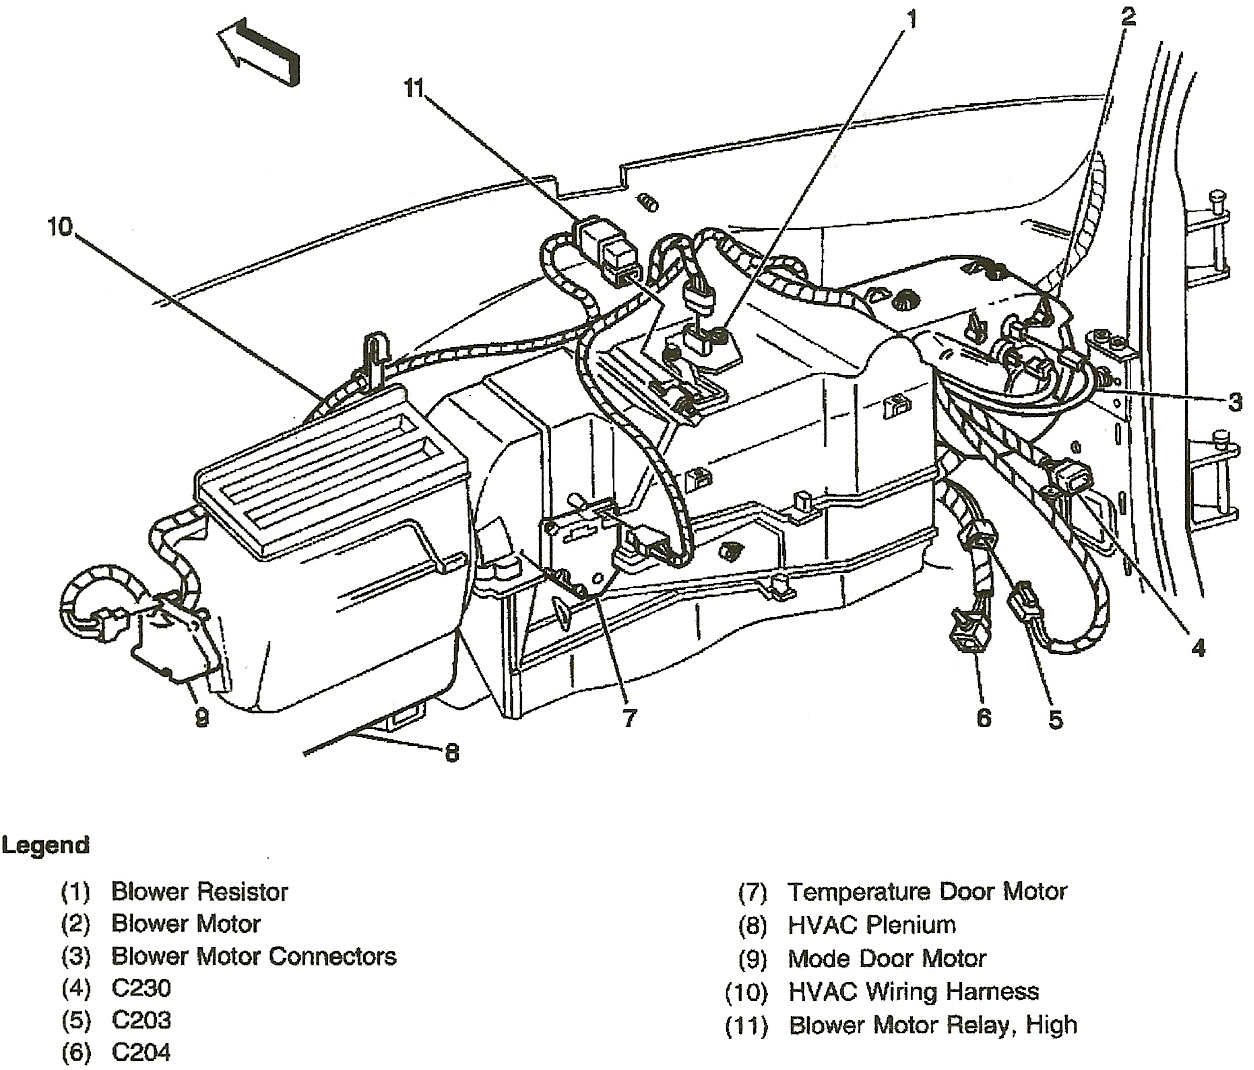 hight resolution of suburban transmission diagram wiring diagram todays 2004 chevy silverado transmission parts diagram 2004 chevy silverado transmission parts diagram